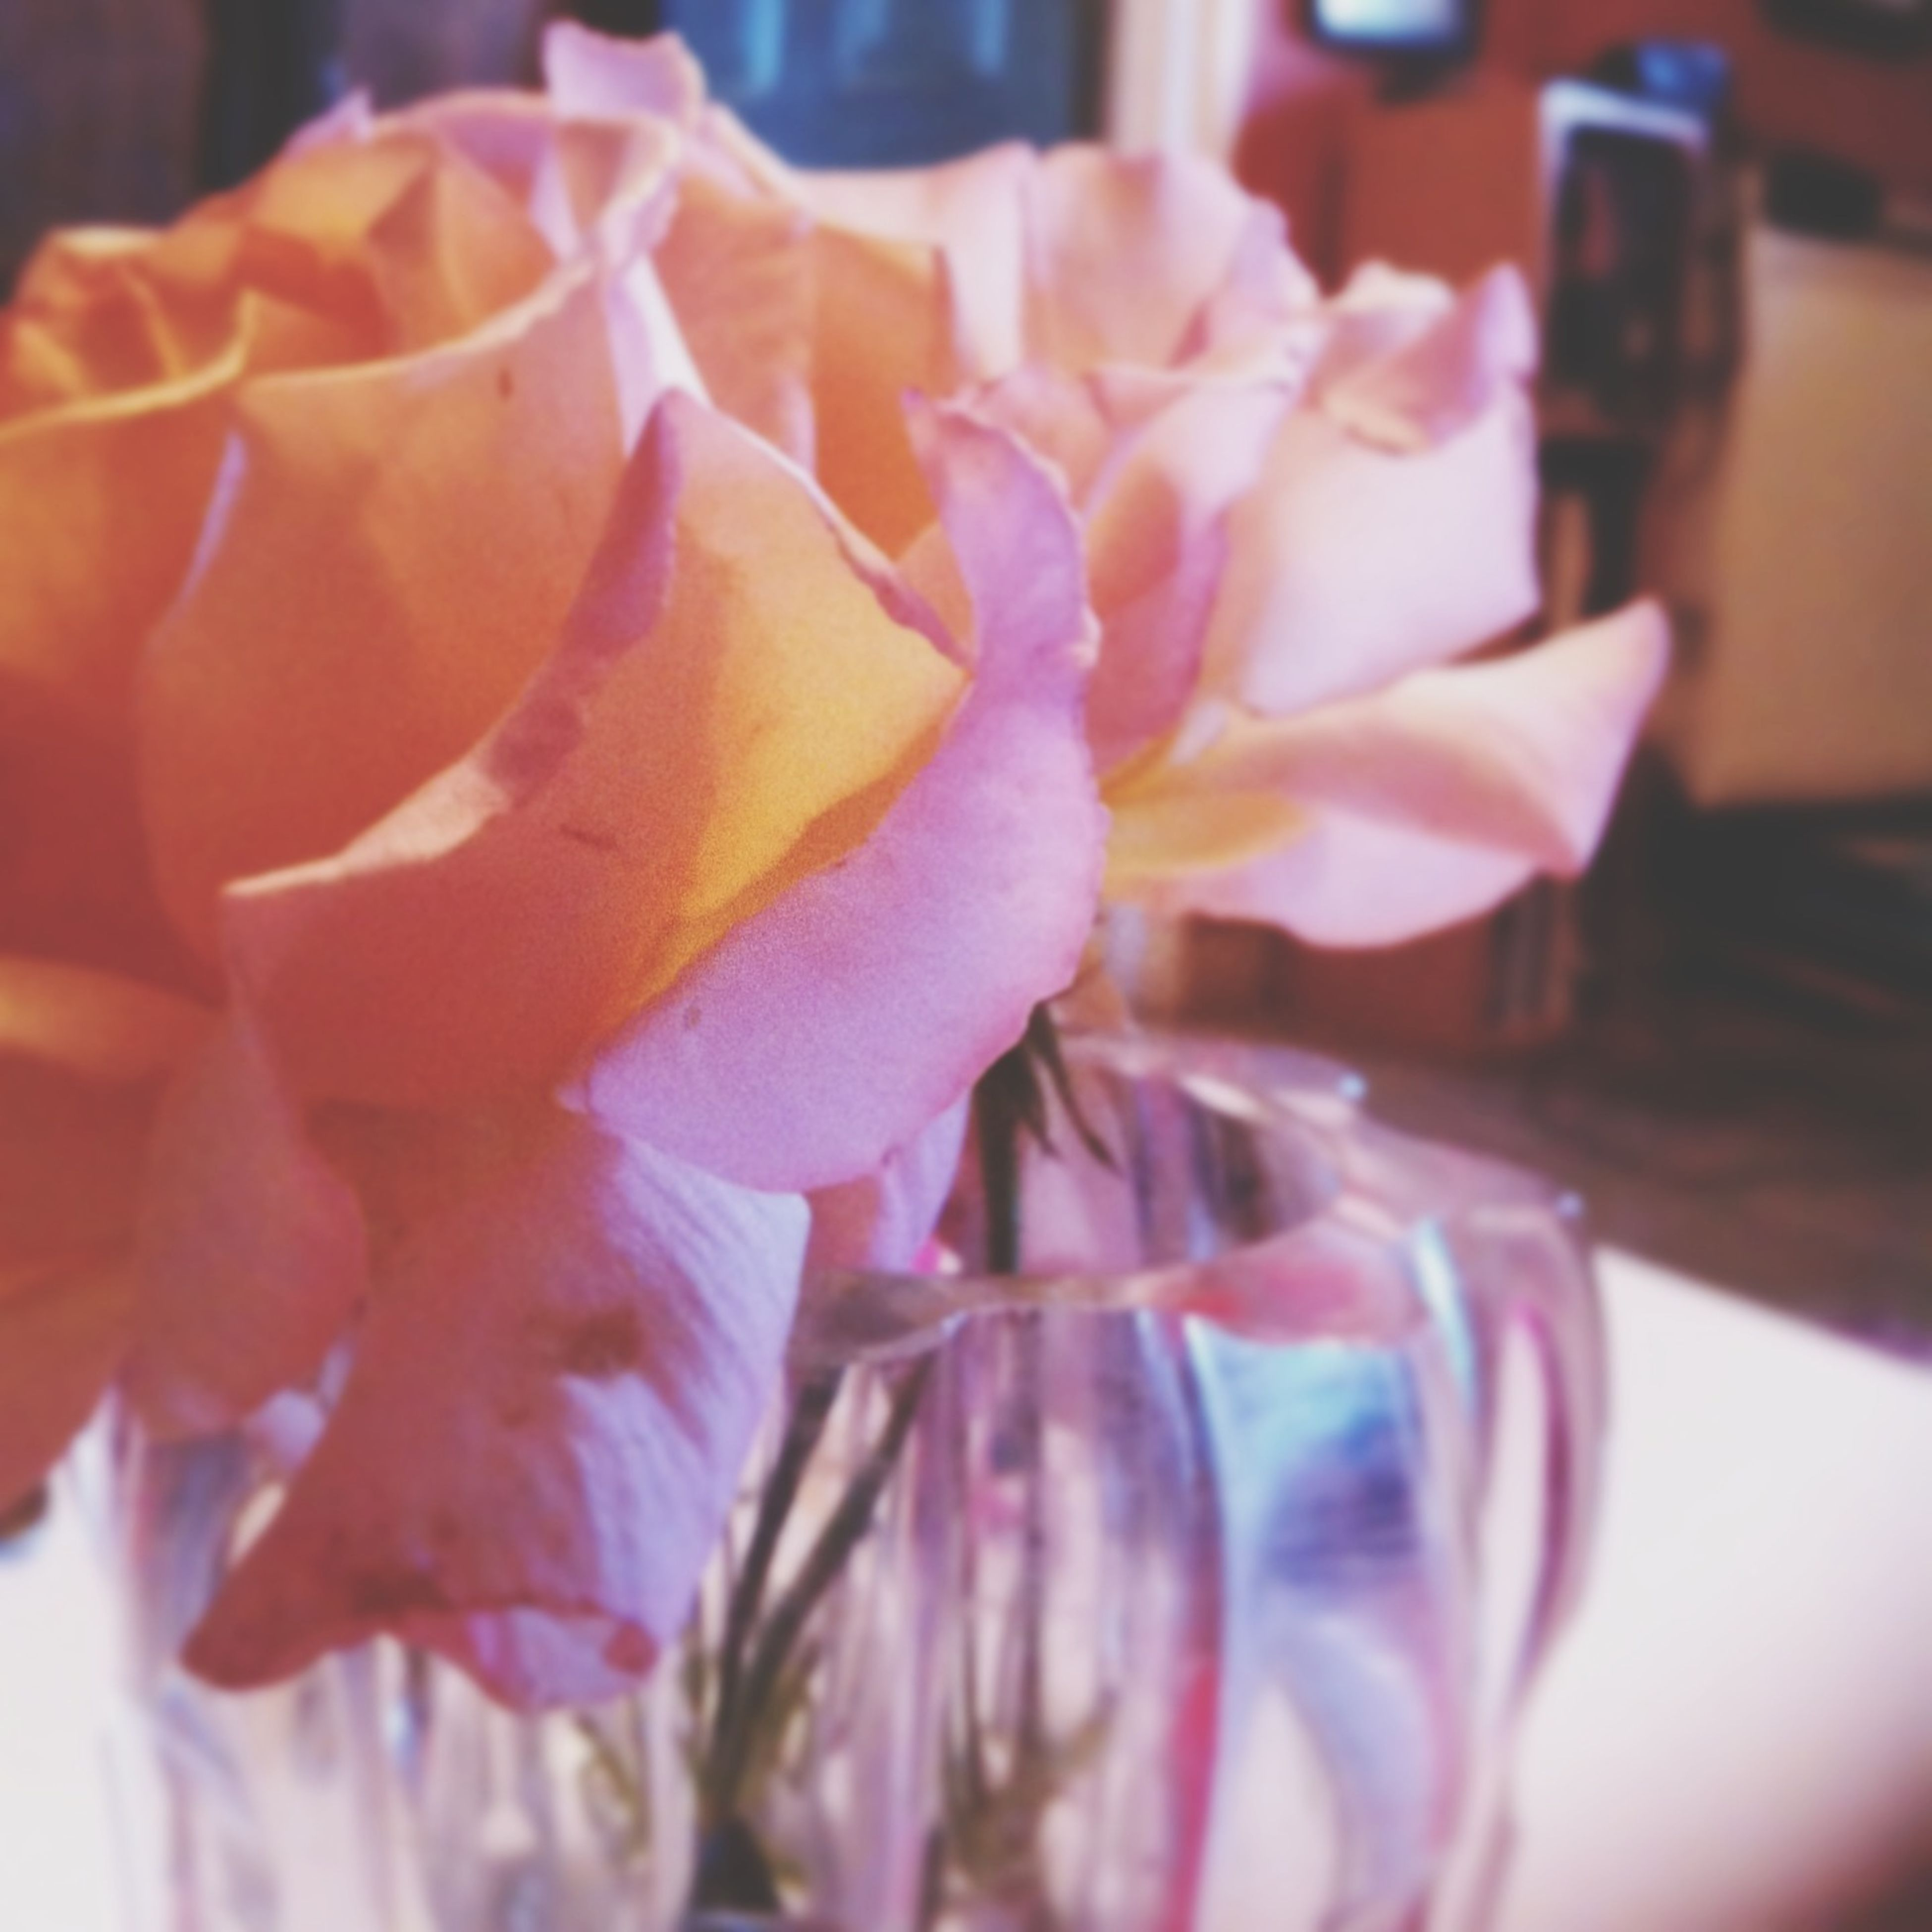 flower, indoors, petal, freshness, close-up, flower head, fragility, pink color, table, focus on foreground, vase, selective focus, still life, no people, home interior, rose - flower, decoration, beauty in nature, nature, pink